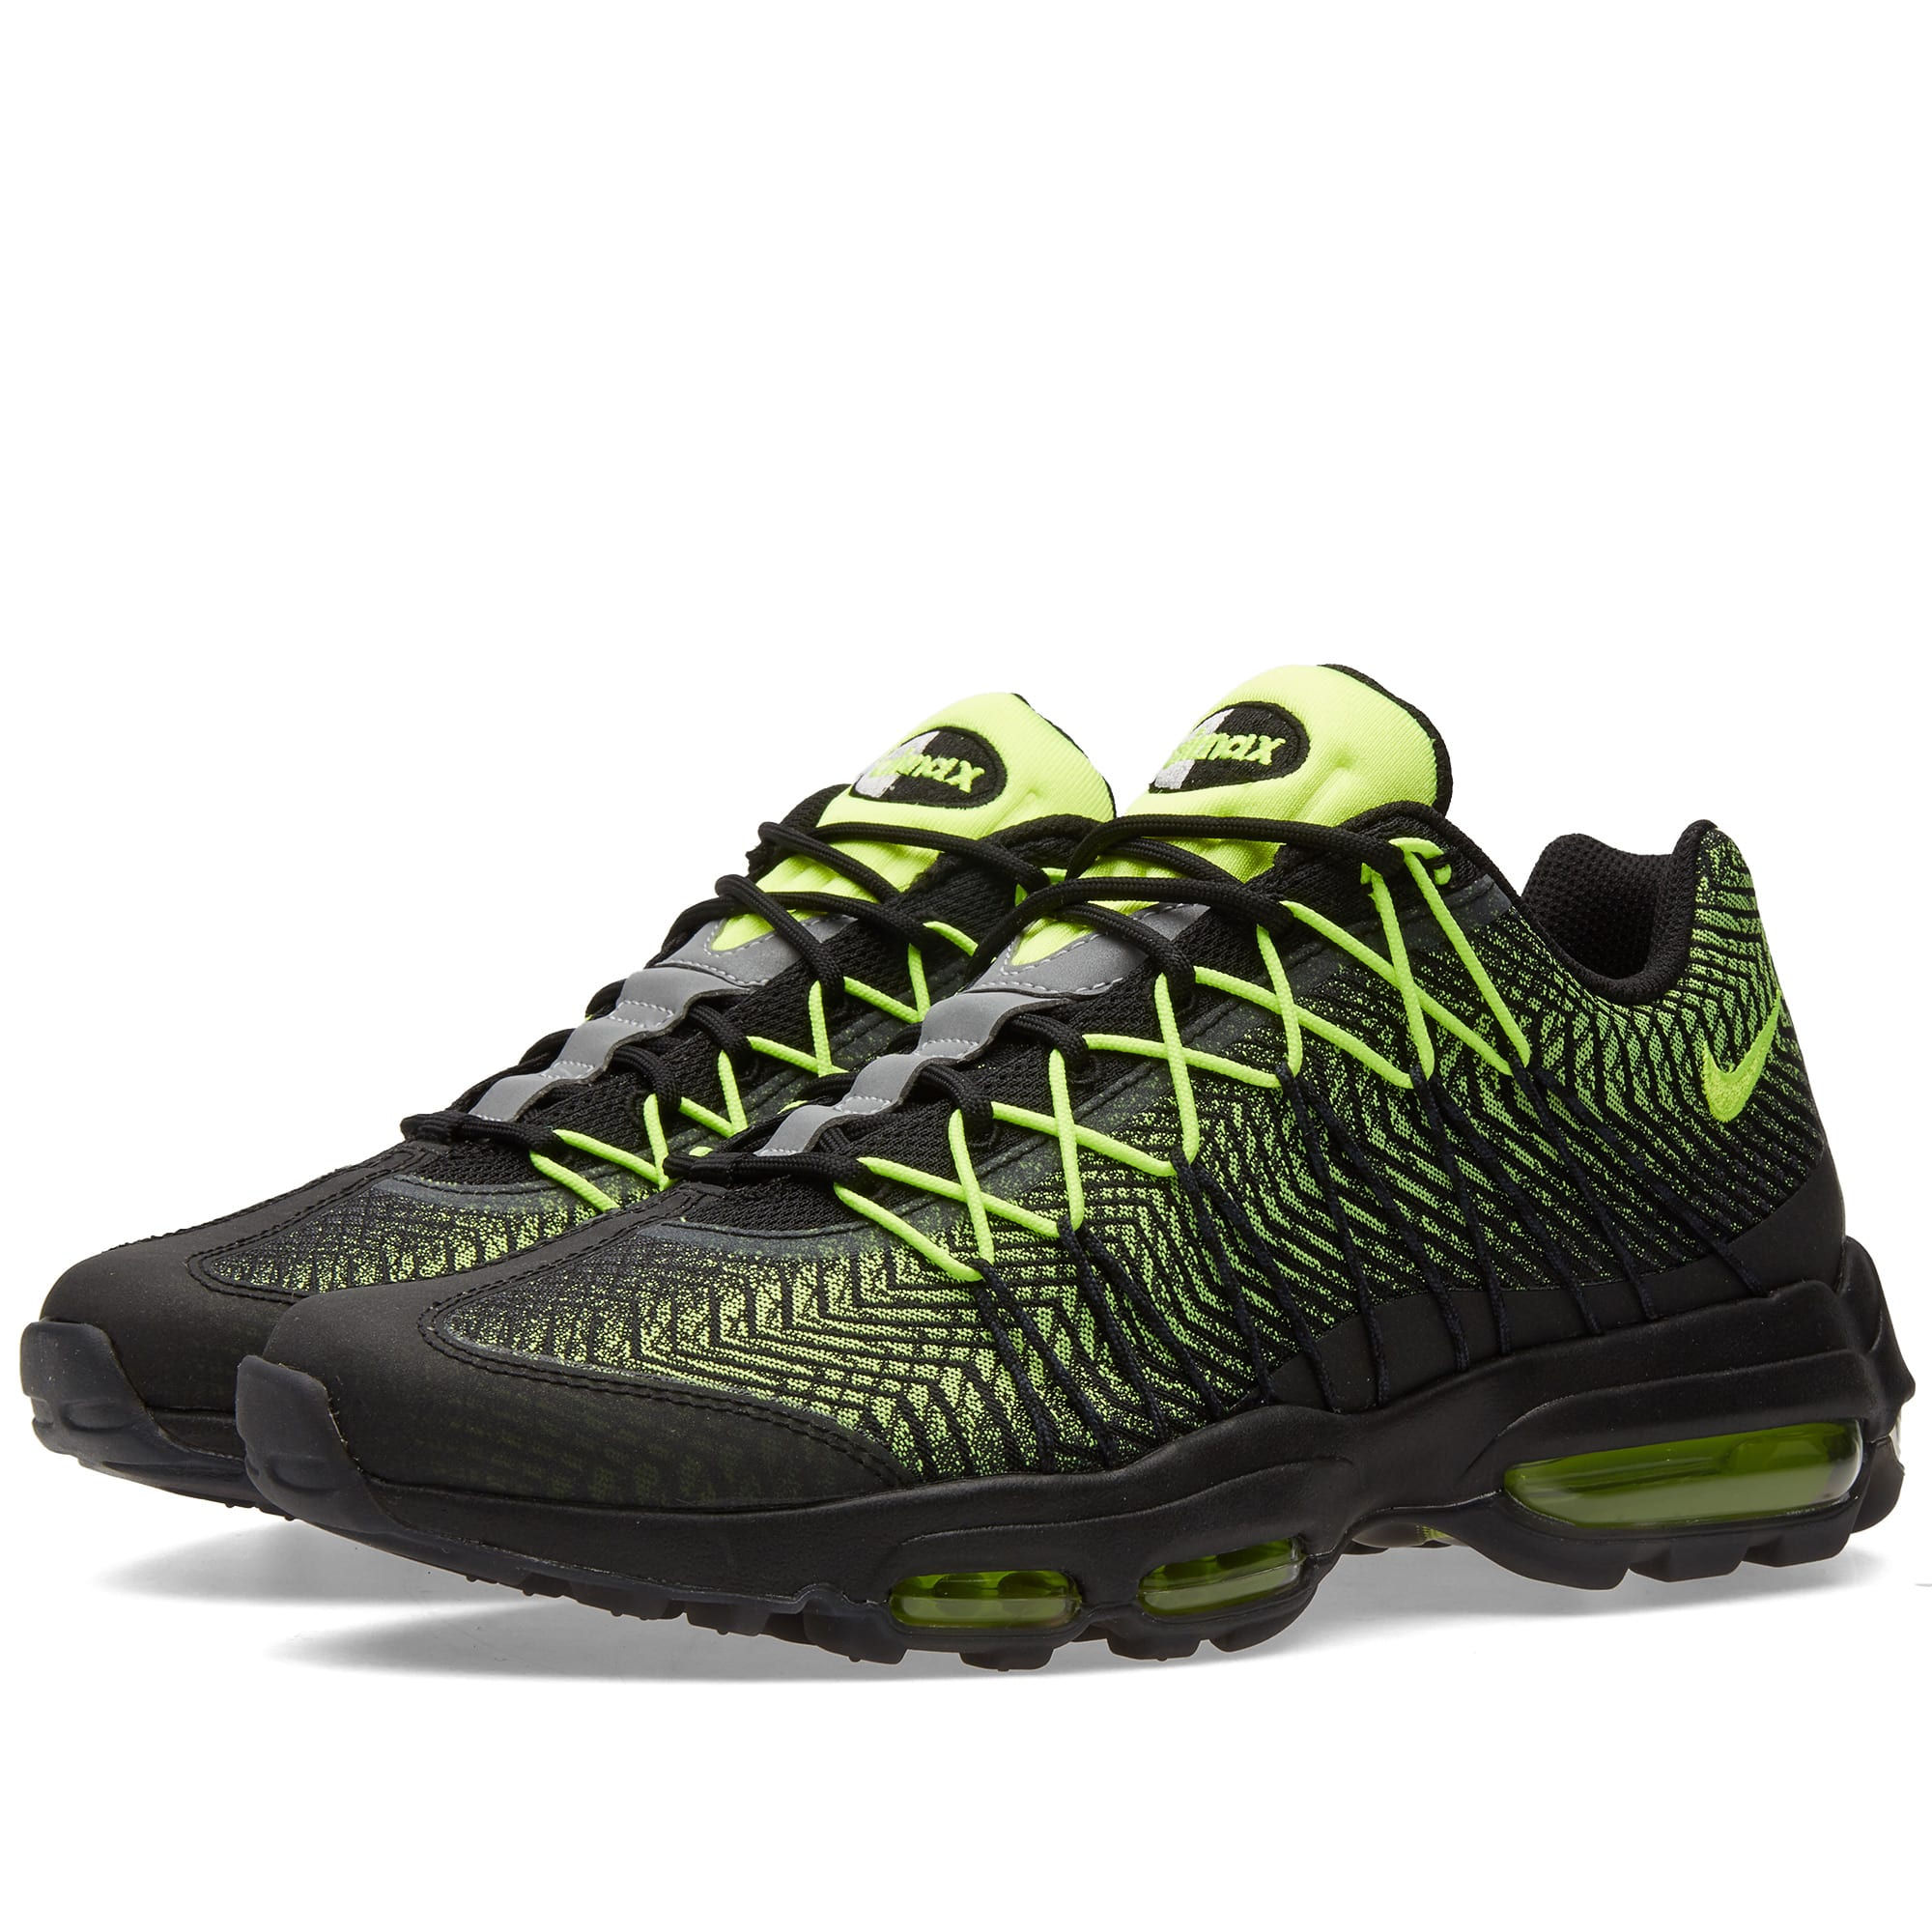 new arrival 6e63f 28a70 Nike Air Max 95 Ultra JCRD Black, Volt   Dark Grey   END.